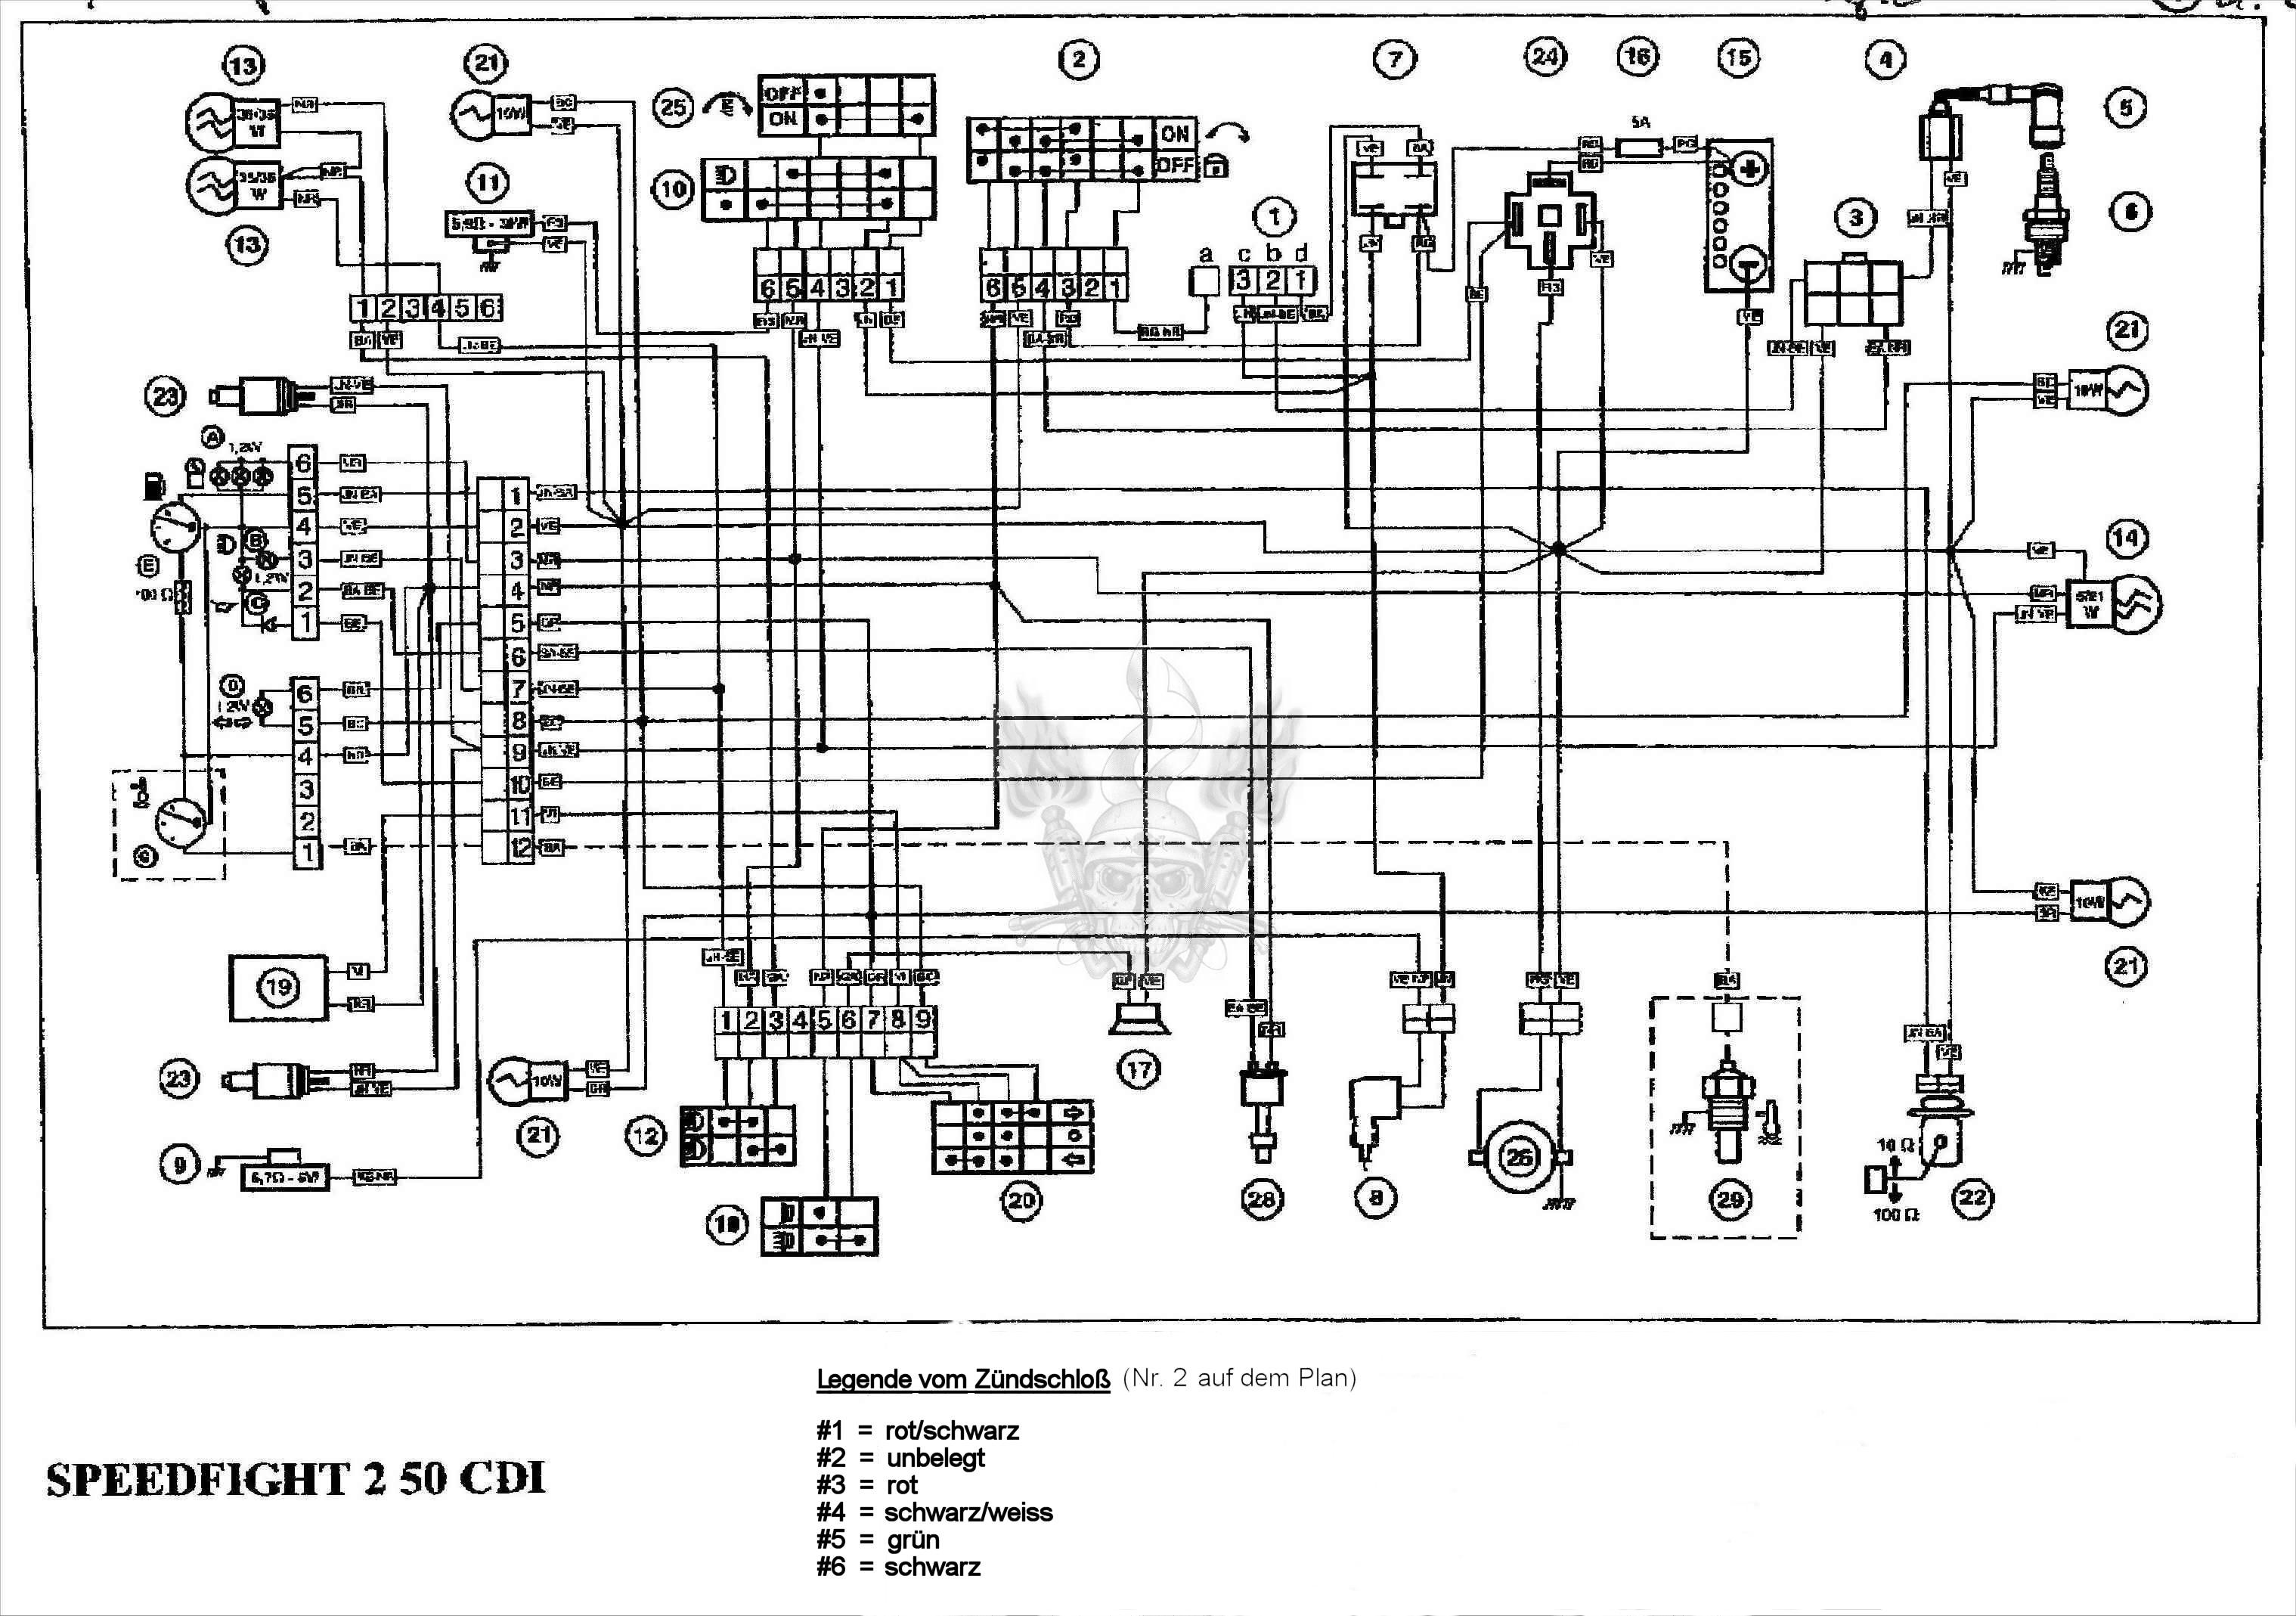 hight resolution of peugeot 505 wiring diagram wiring librarypeugeot scooter wiring diagrams download moto schem peugeot speedfight 2 moto schem peugeot speedfight 2